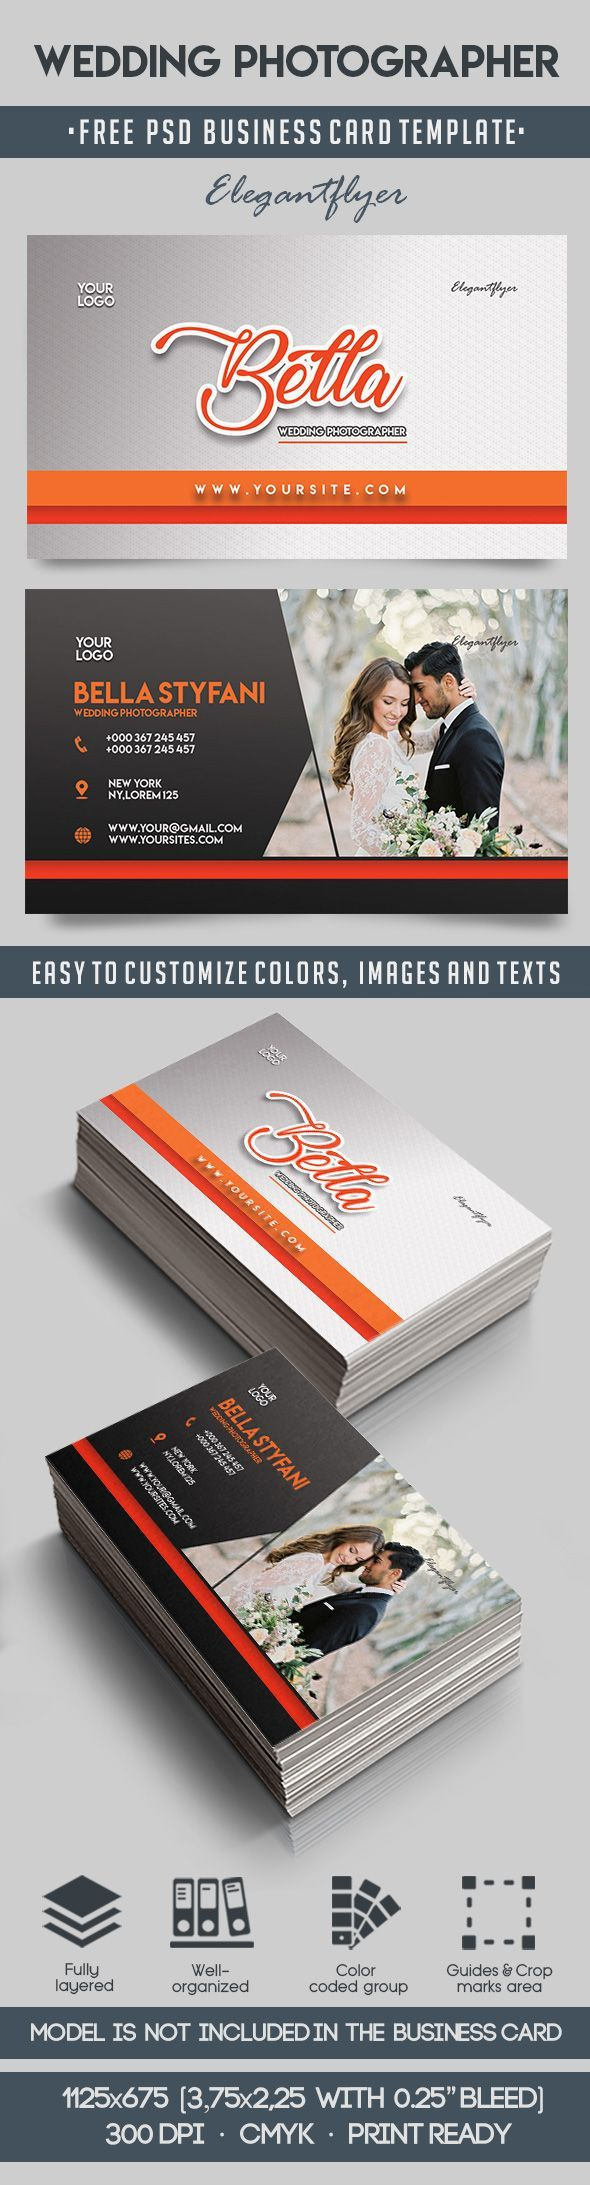 Best 25 free business cards ideas on pinterest free business httpselegantflyerfree business cards magicingreecefo Choice Image